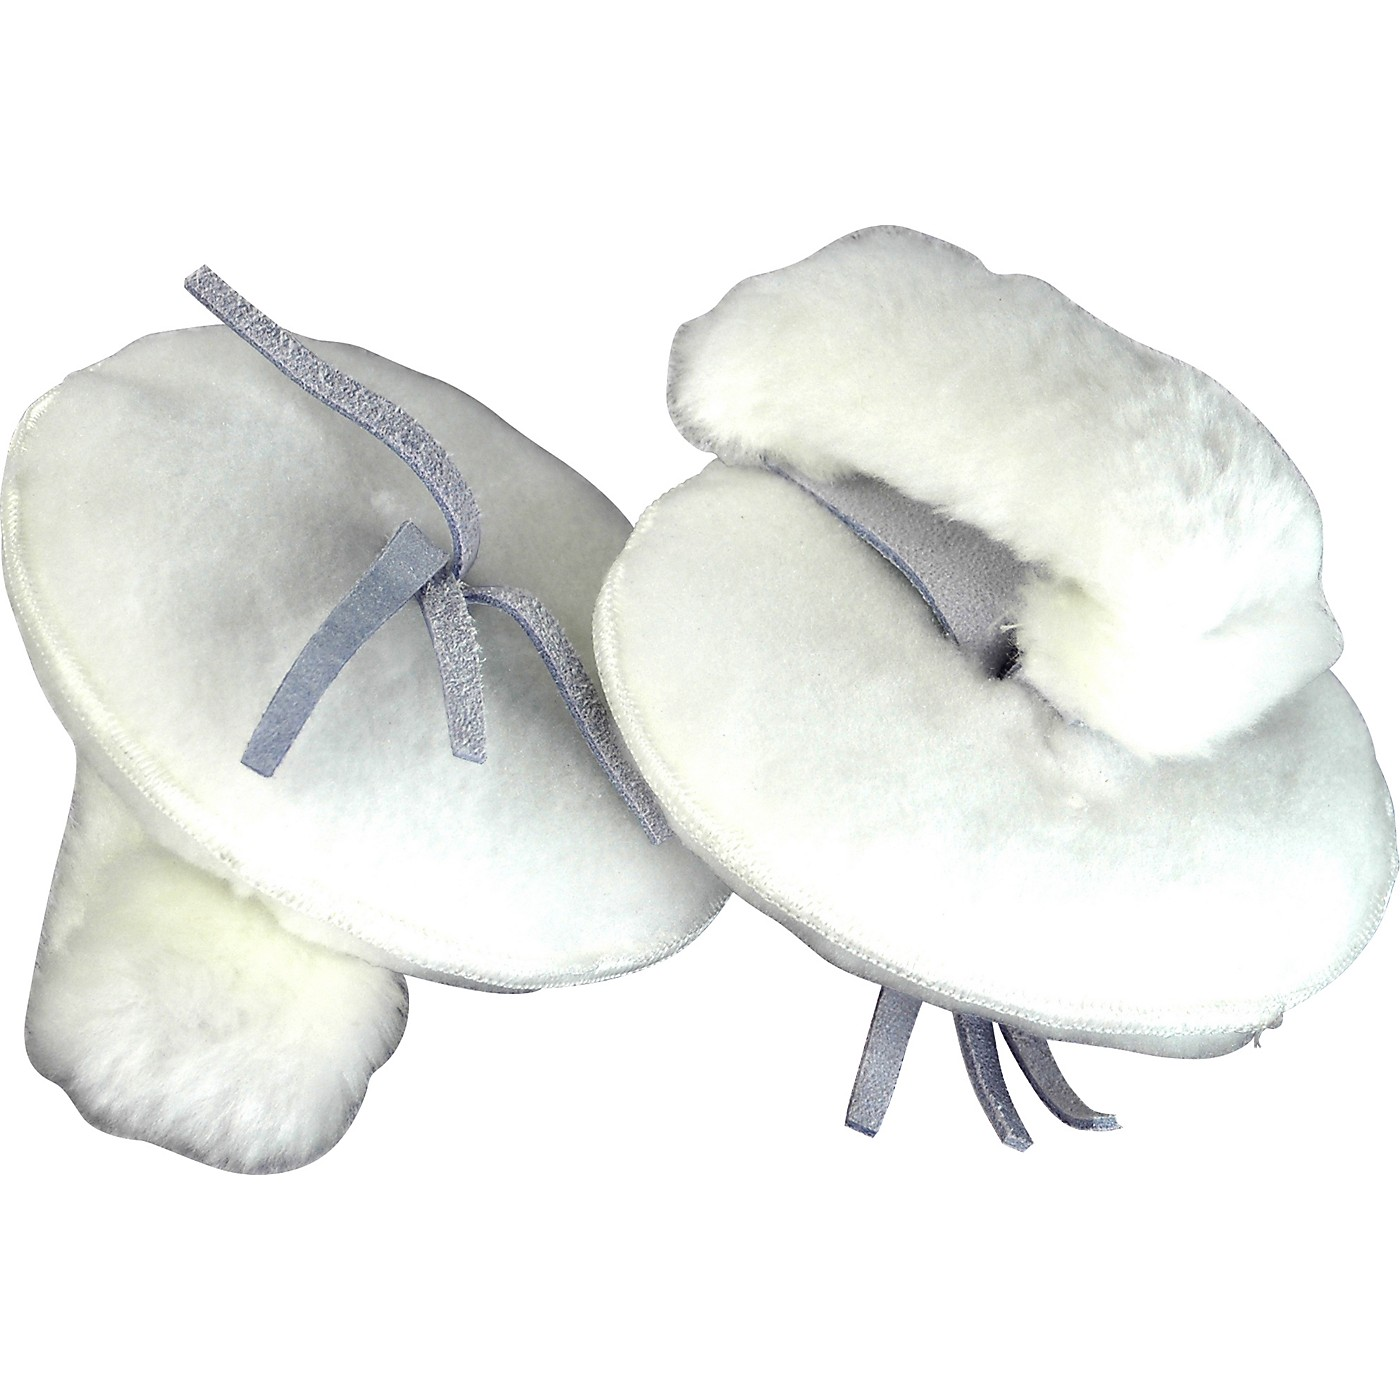 Duplex Pad And Strap Set for Cymbals thumbnail